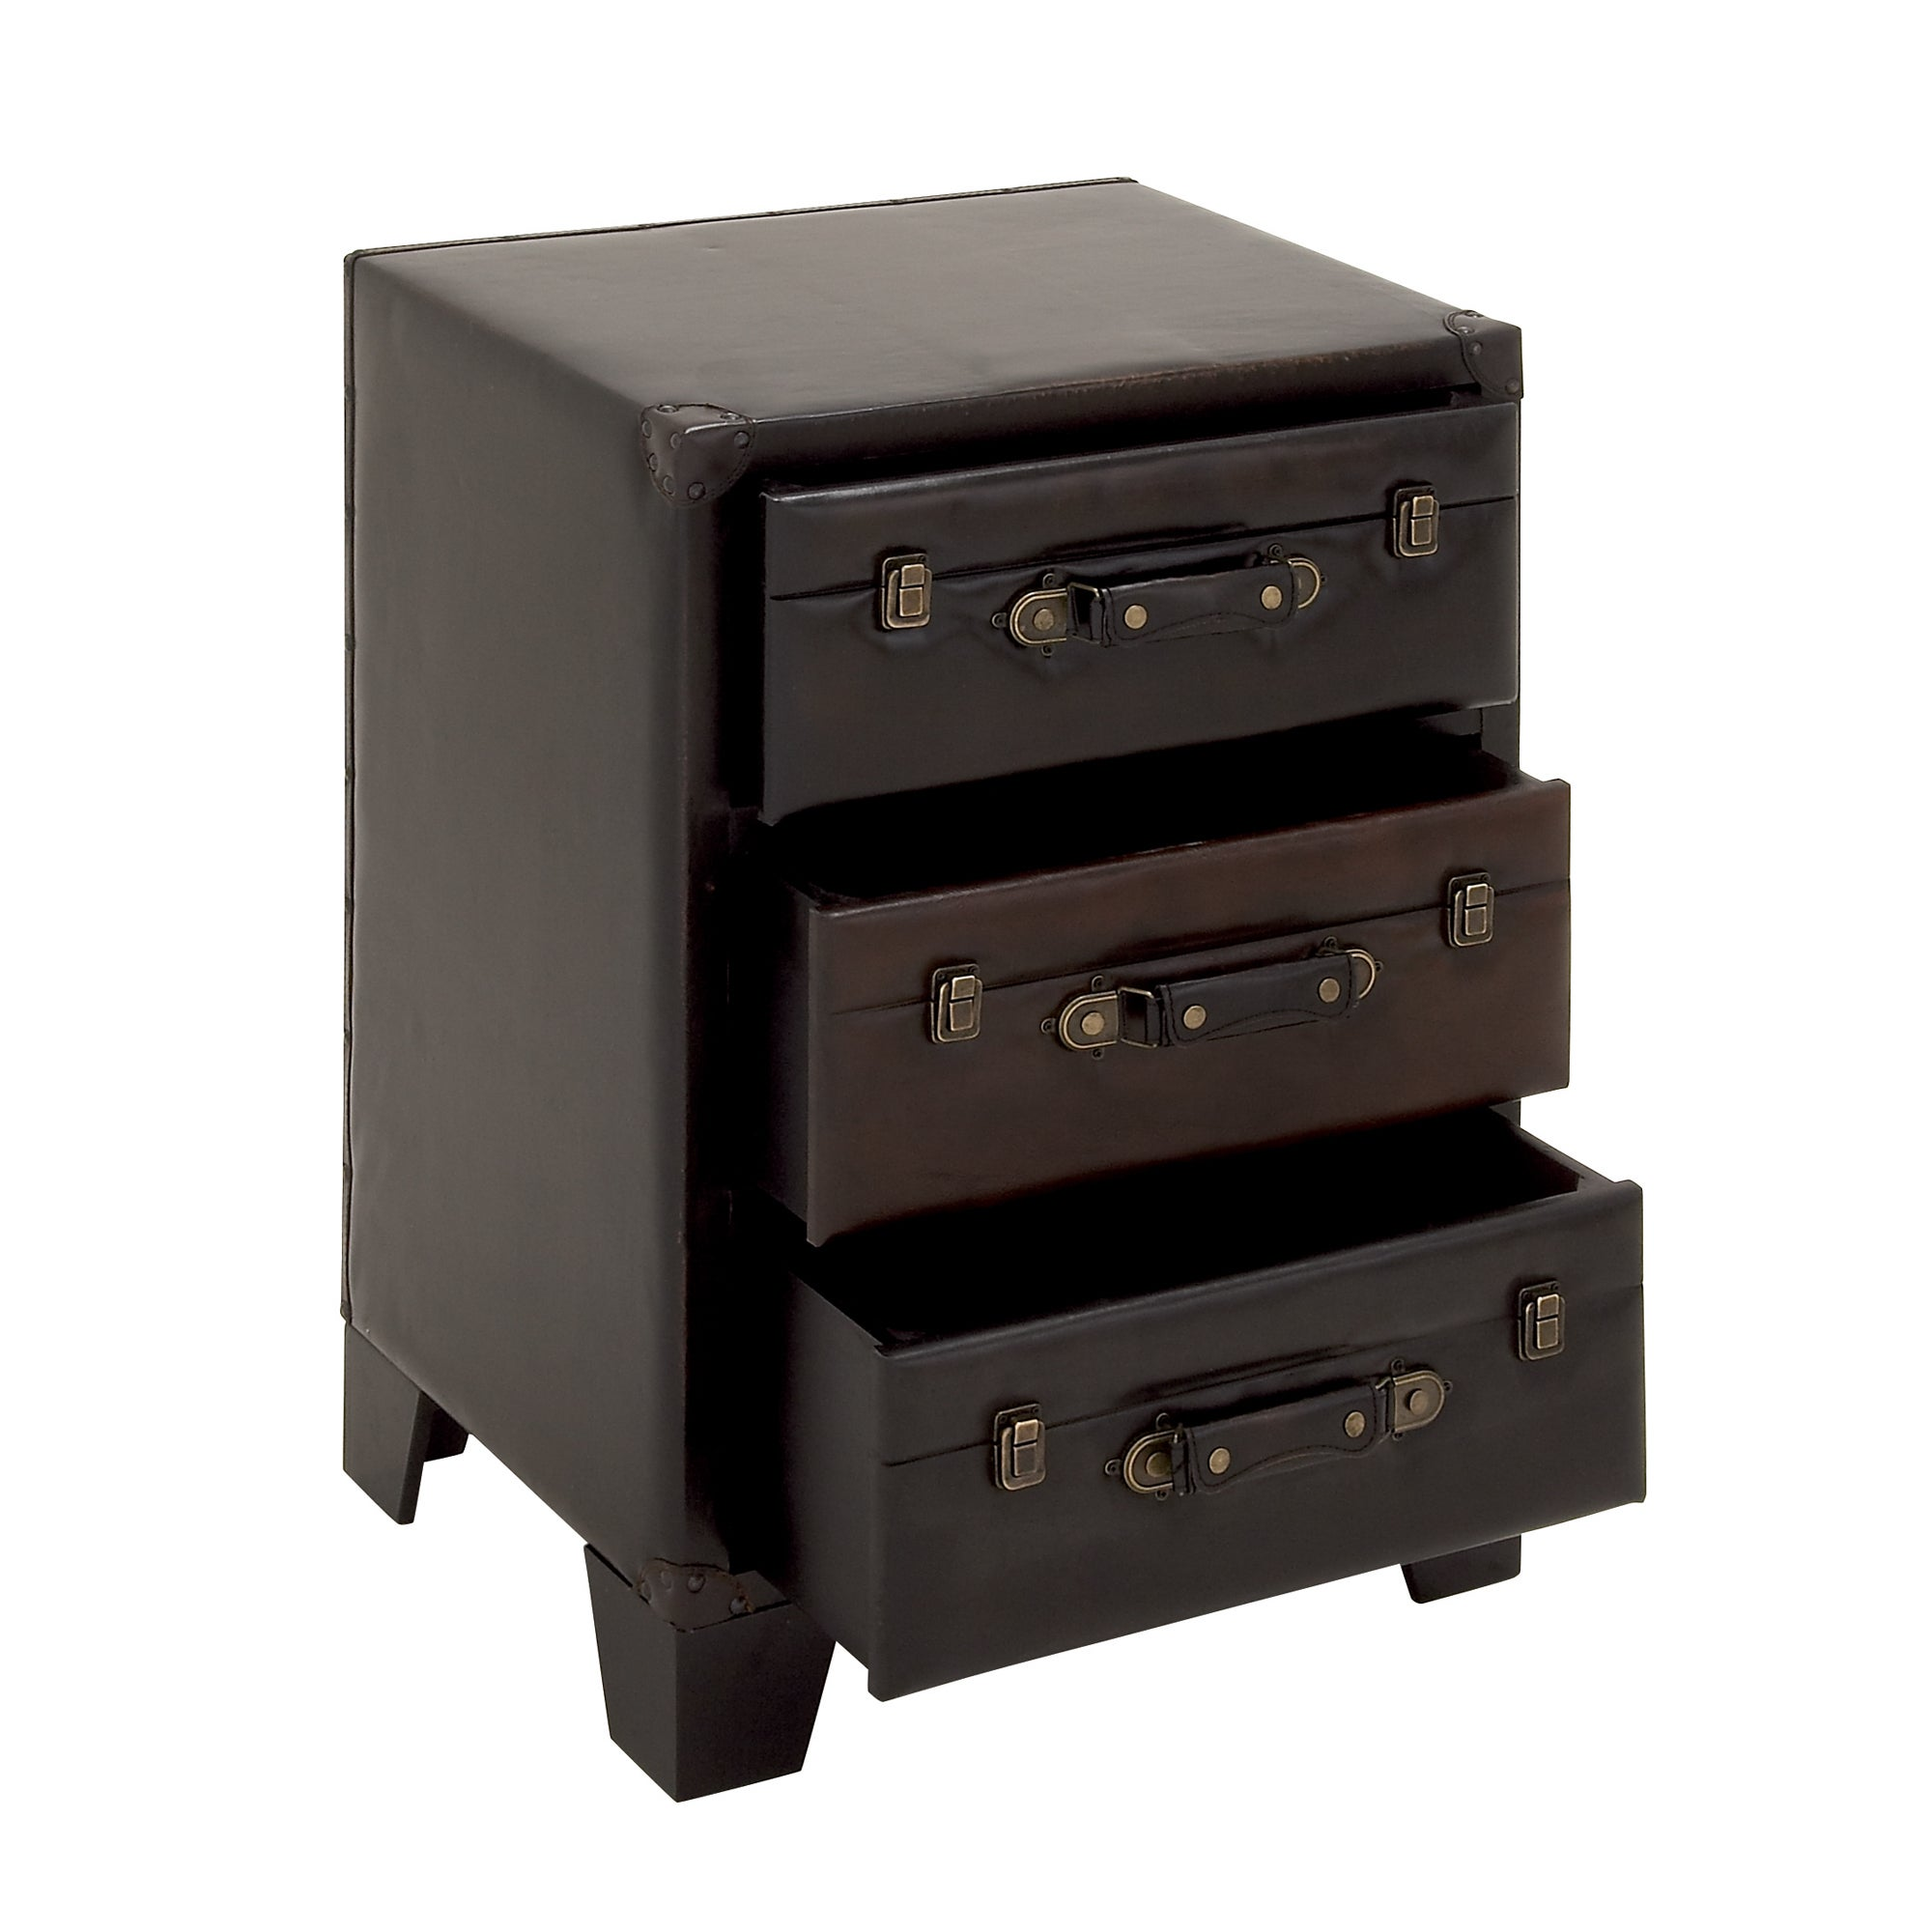 Urban Designs 3 Drawer Espresso Leather Cabinet Nightstand 120722ec 1ef1 4b38 af58 50119ceaabf9 Top Result 50 Fresh Espresso Coffee Table Picture 2017 Zzt4